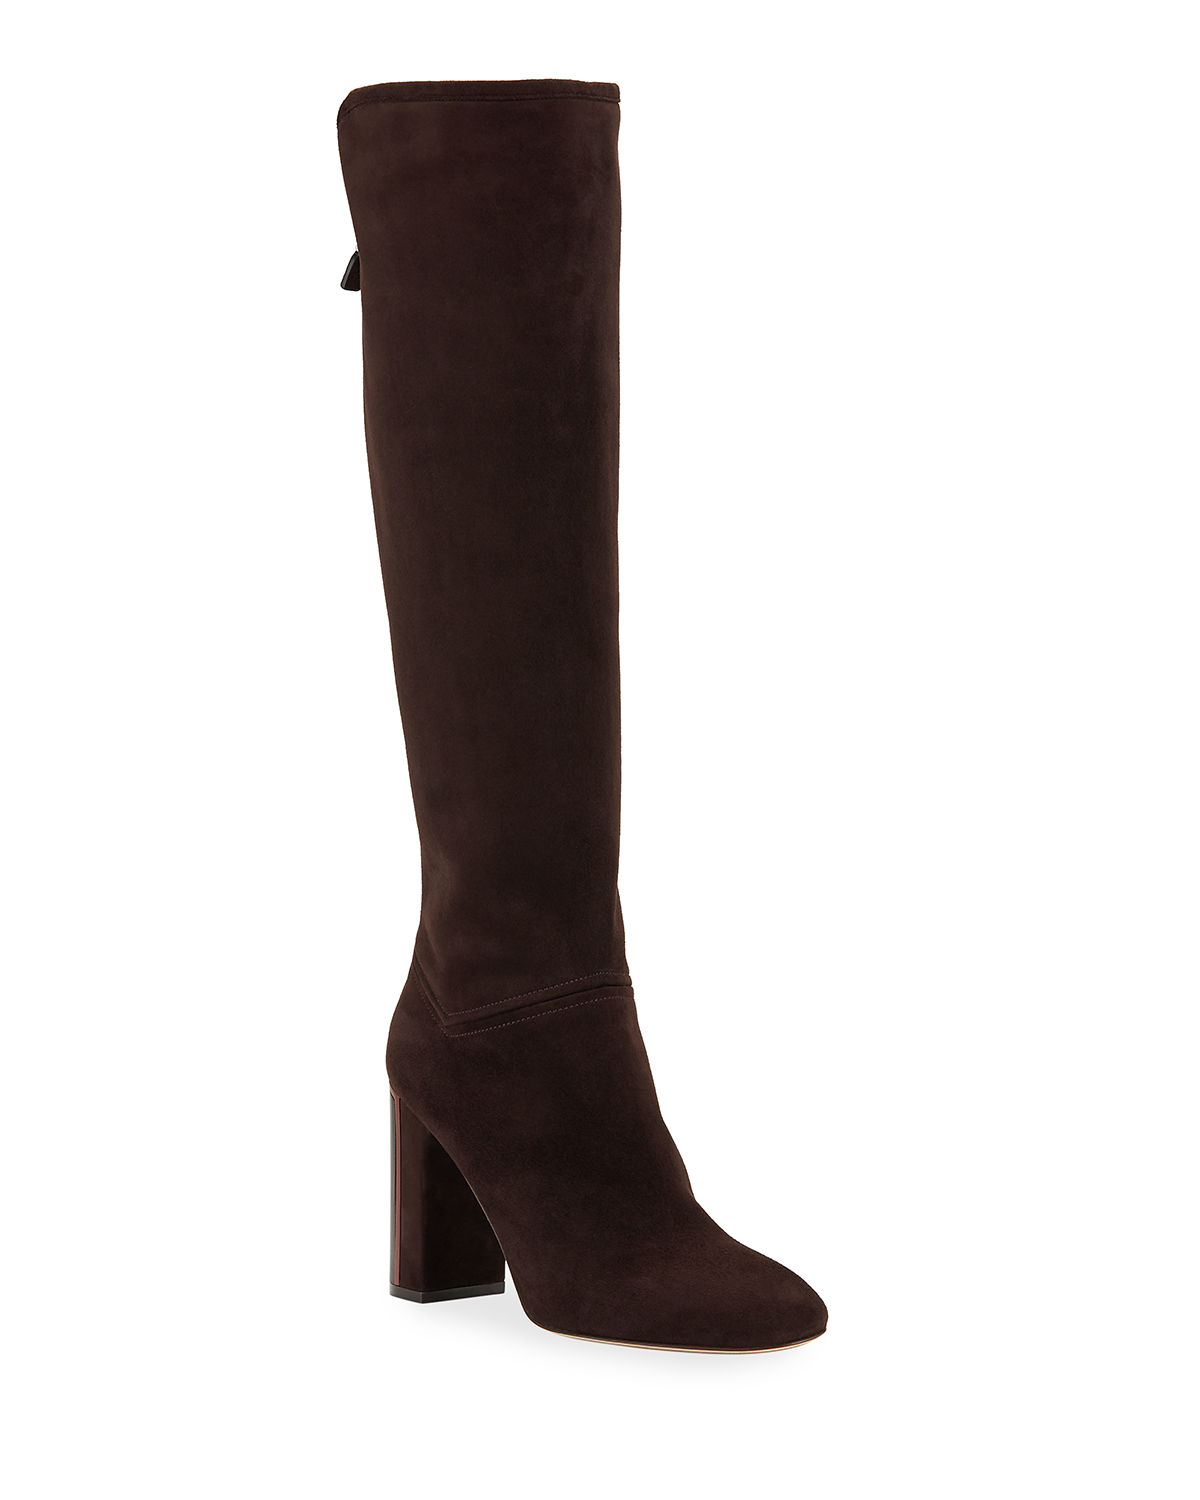 Loro Piana Boots JEANNE SUEDE KNEE BOOTS